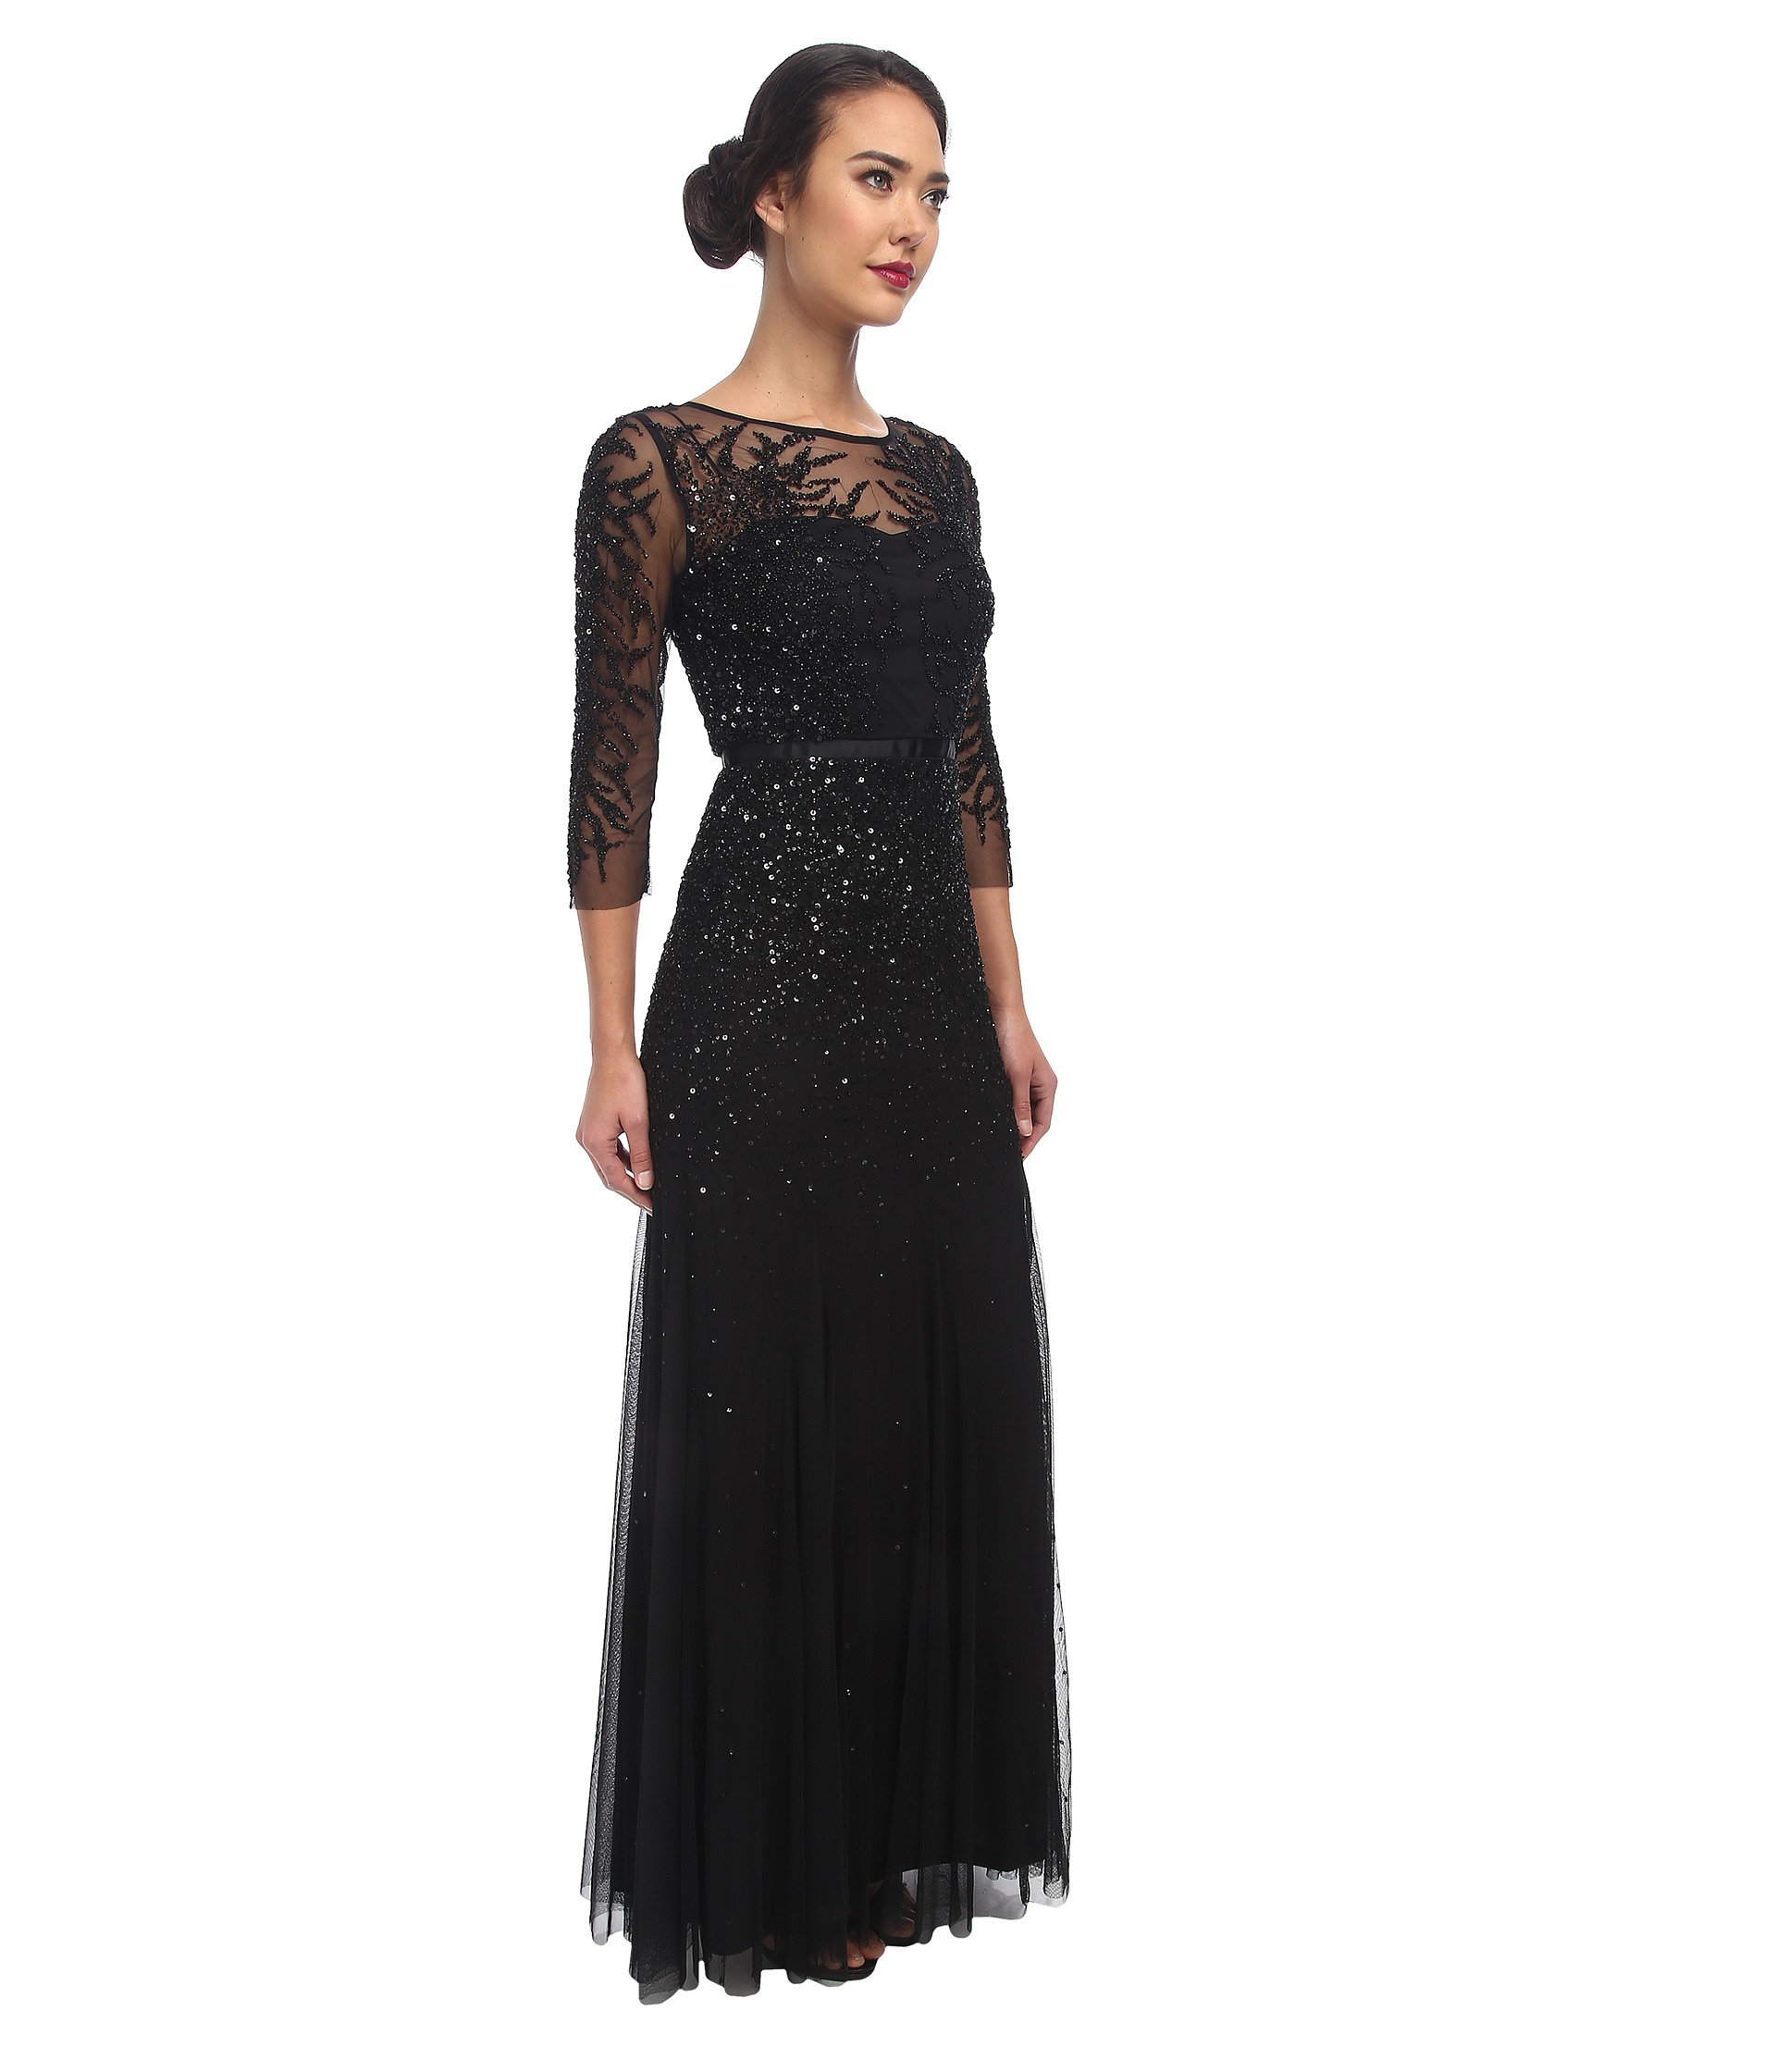 Lyst - Adrianna Papell Long Sleeve Beaded Gown in Black